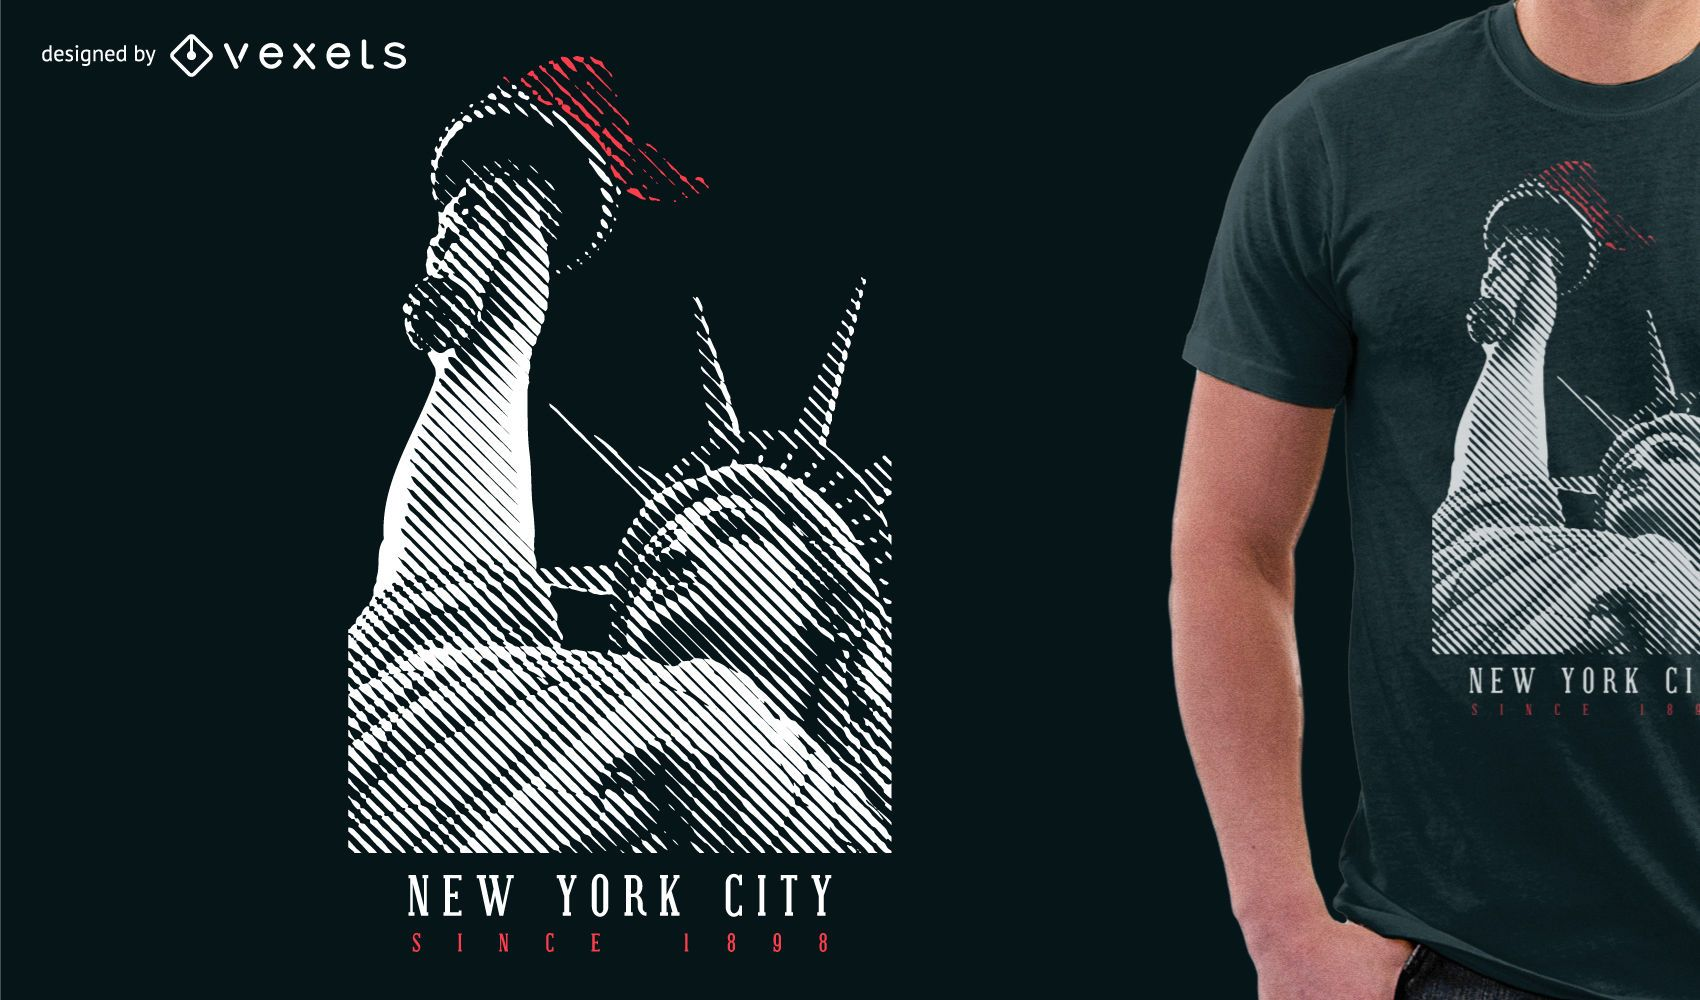 Design a t shirt nyc - New York City T Shirt Design Download Large Image 1700x1000px